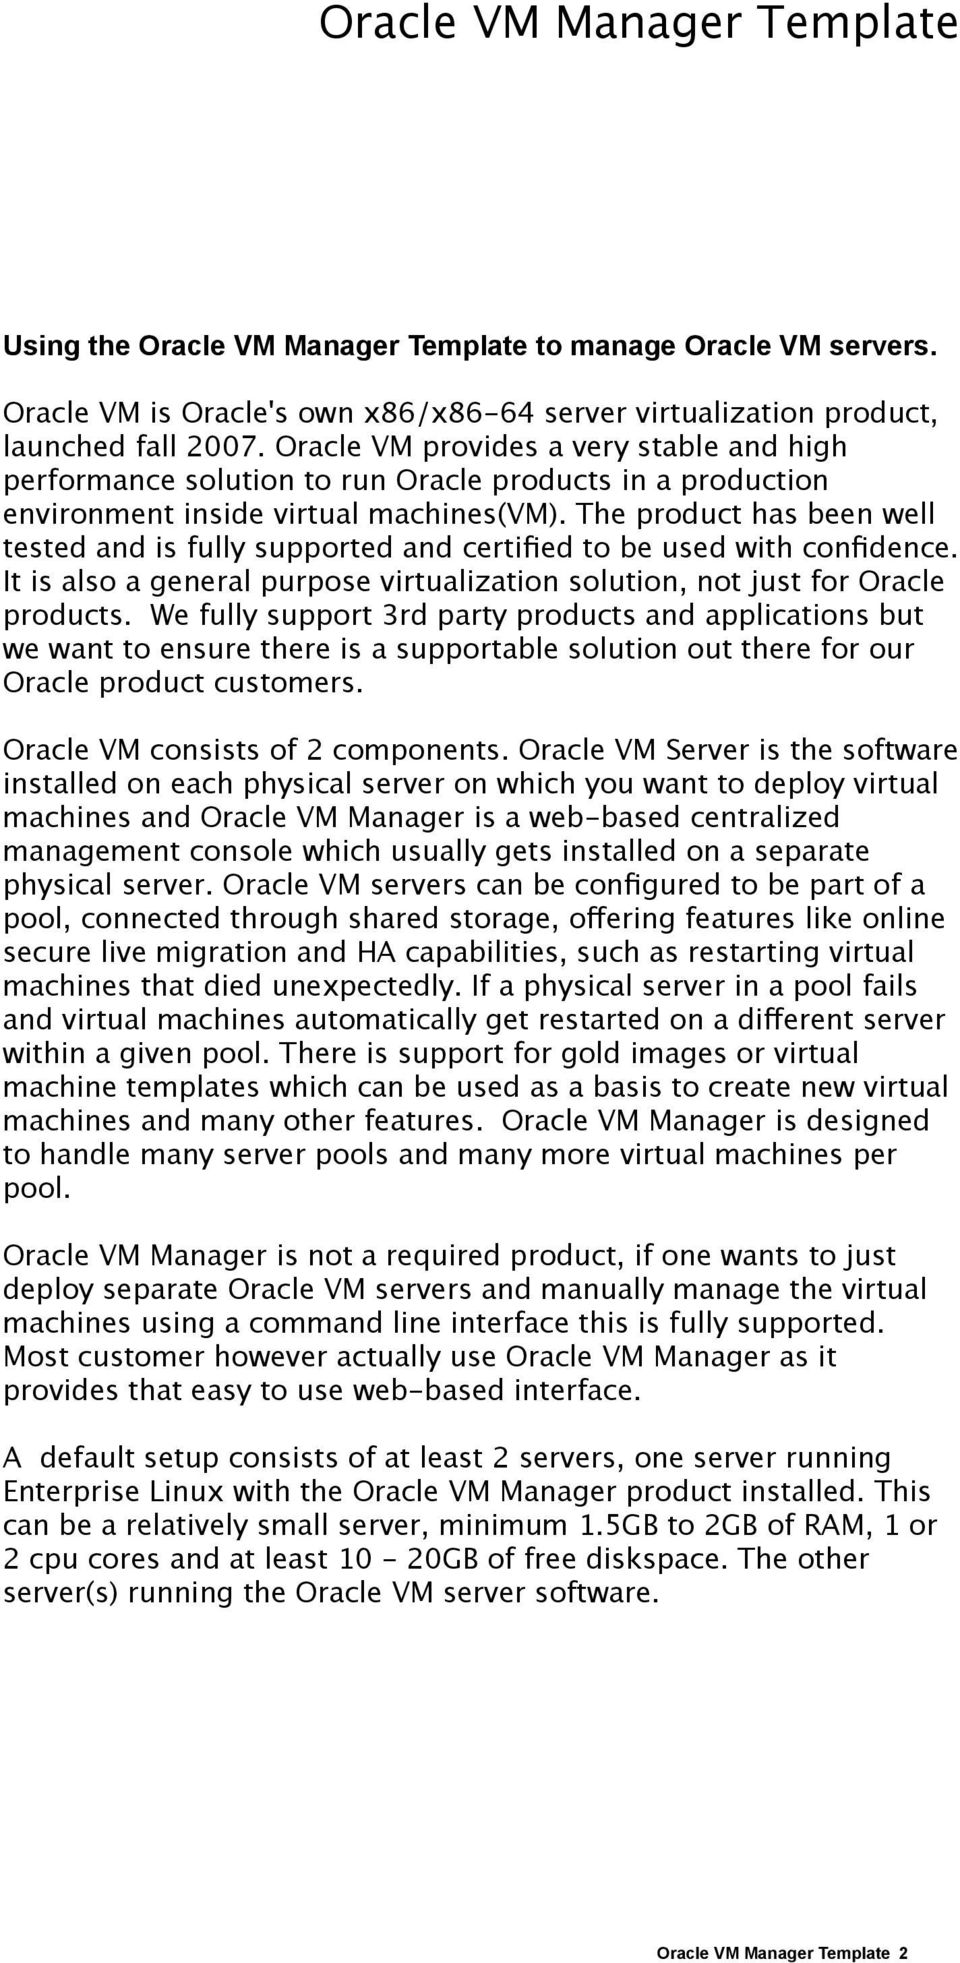 The product has been well tested and is fully supported and certified to be used with confidence. It is also a general purpose virtualization solution, not just for Oracle products.